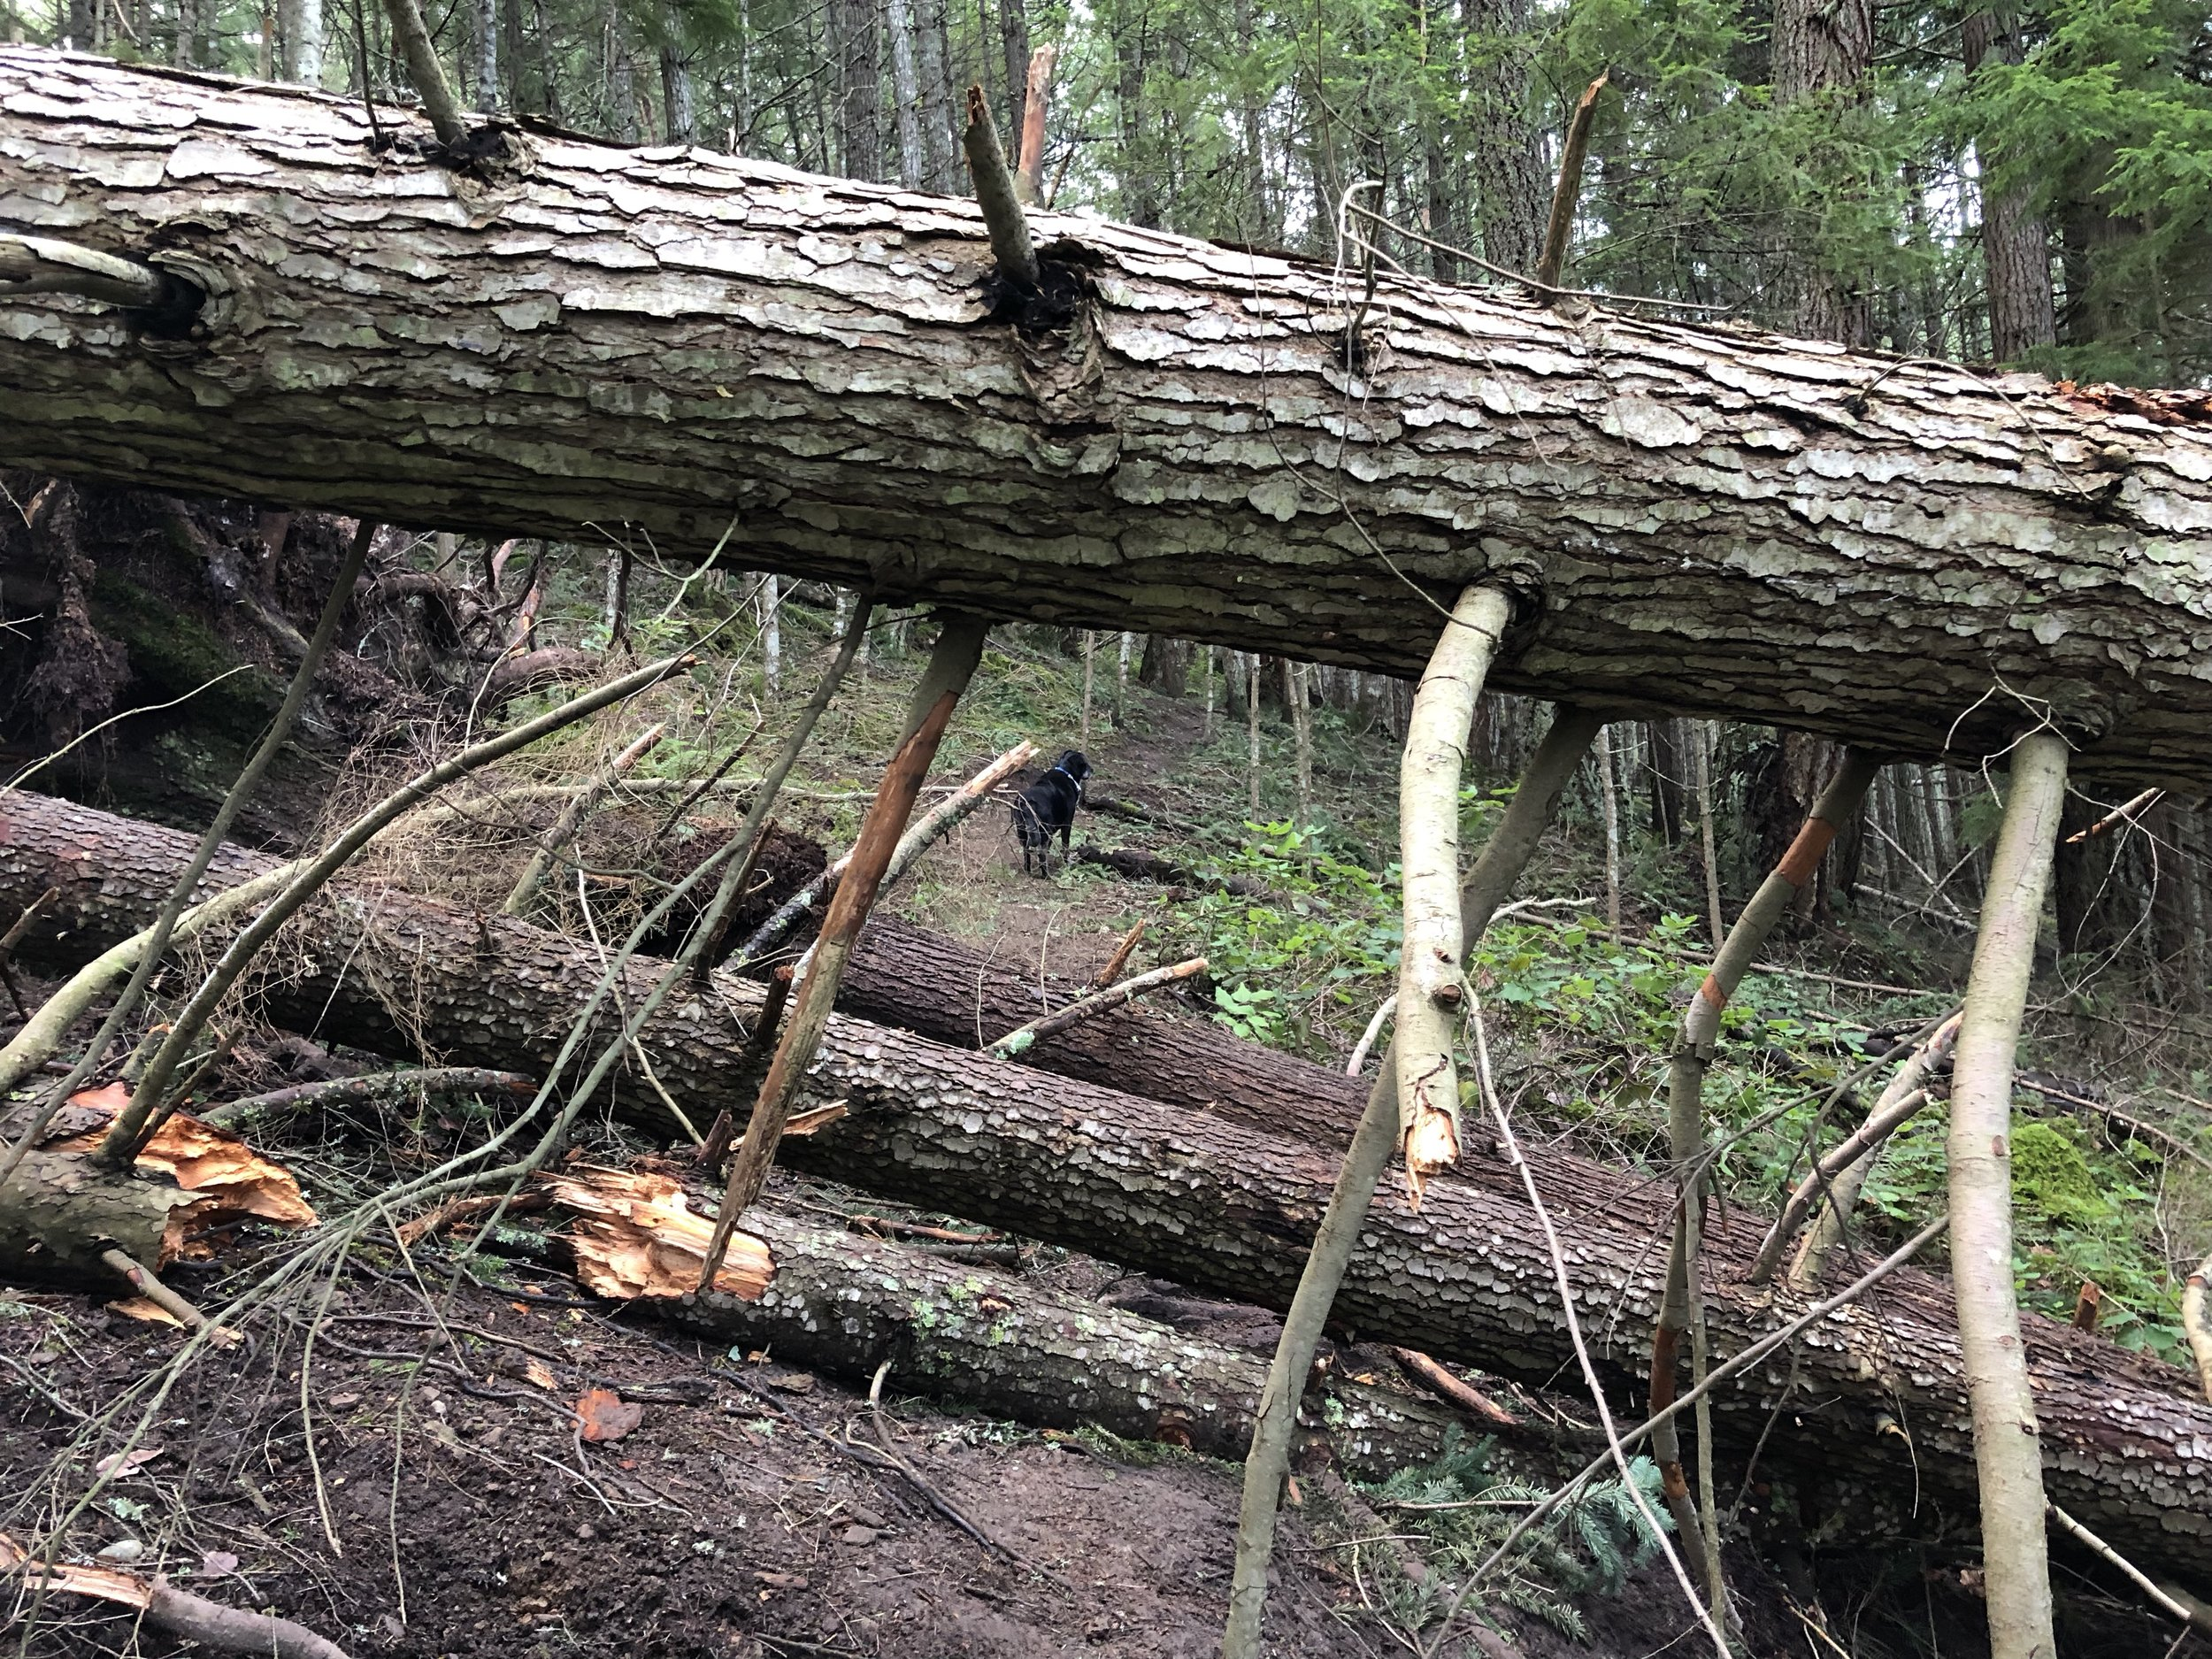 Just one of many trees down.